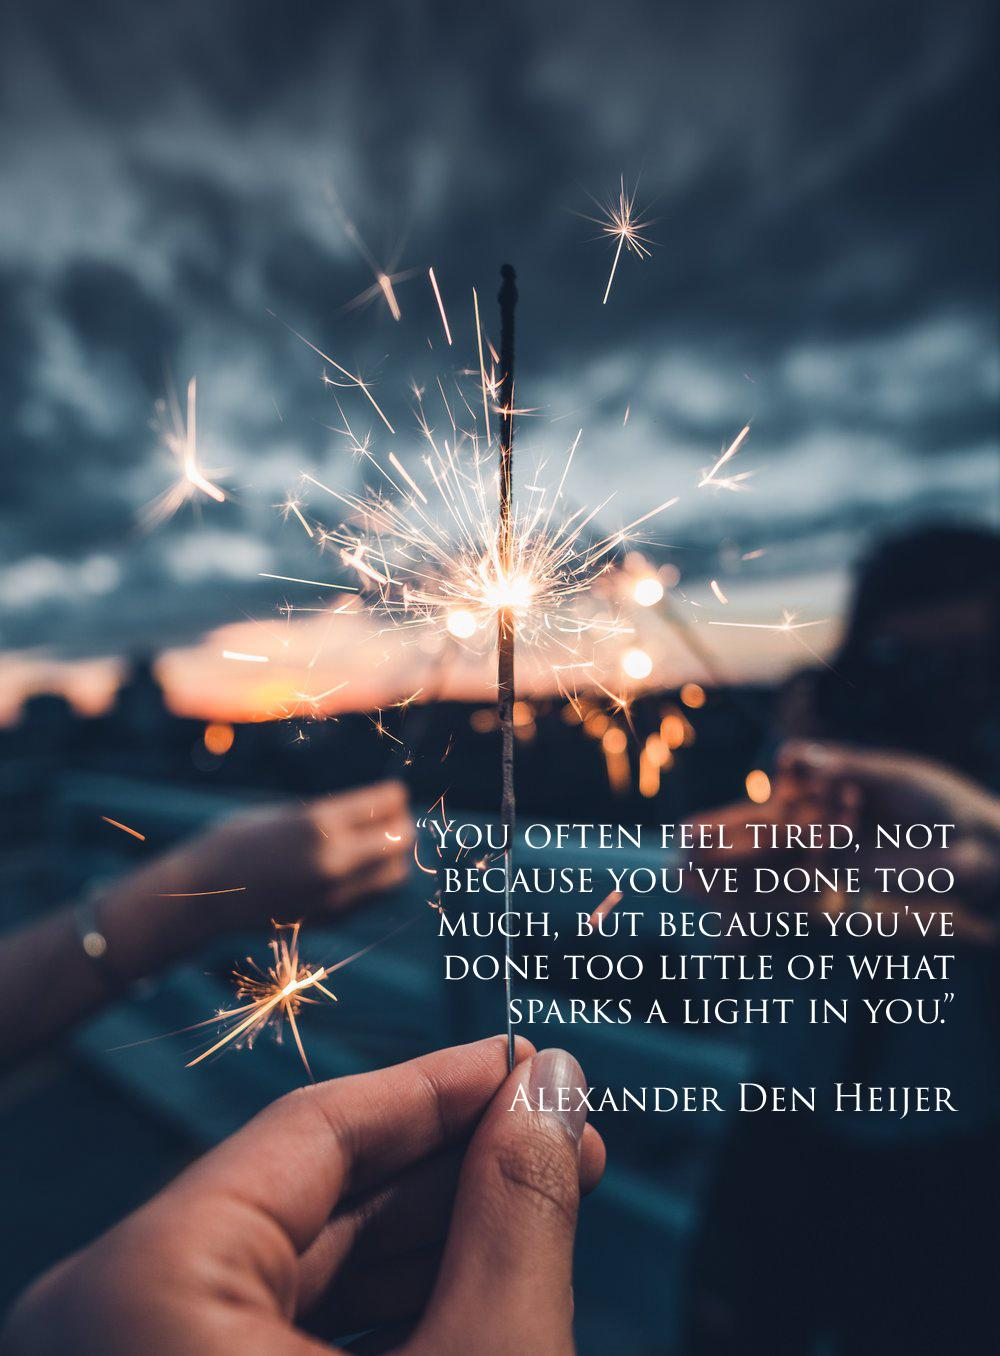 """You often feel tired, not because you've done too much, but …"" –Alexander Den Heijer (1000 x 1356)"